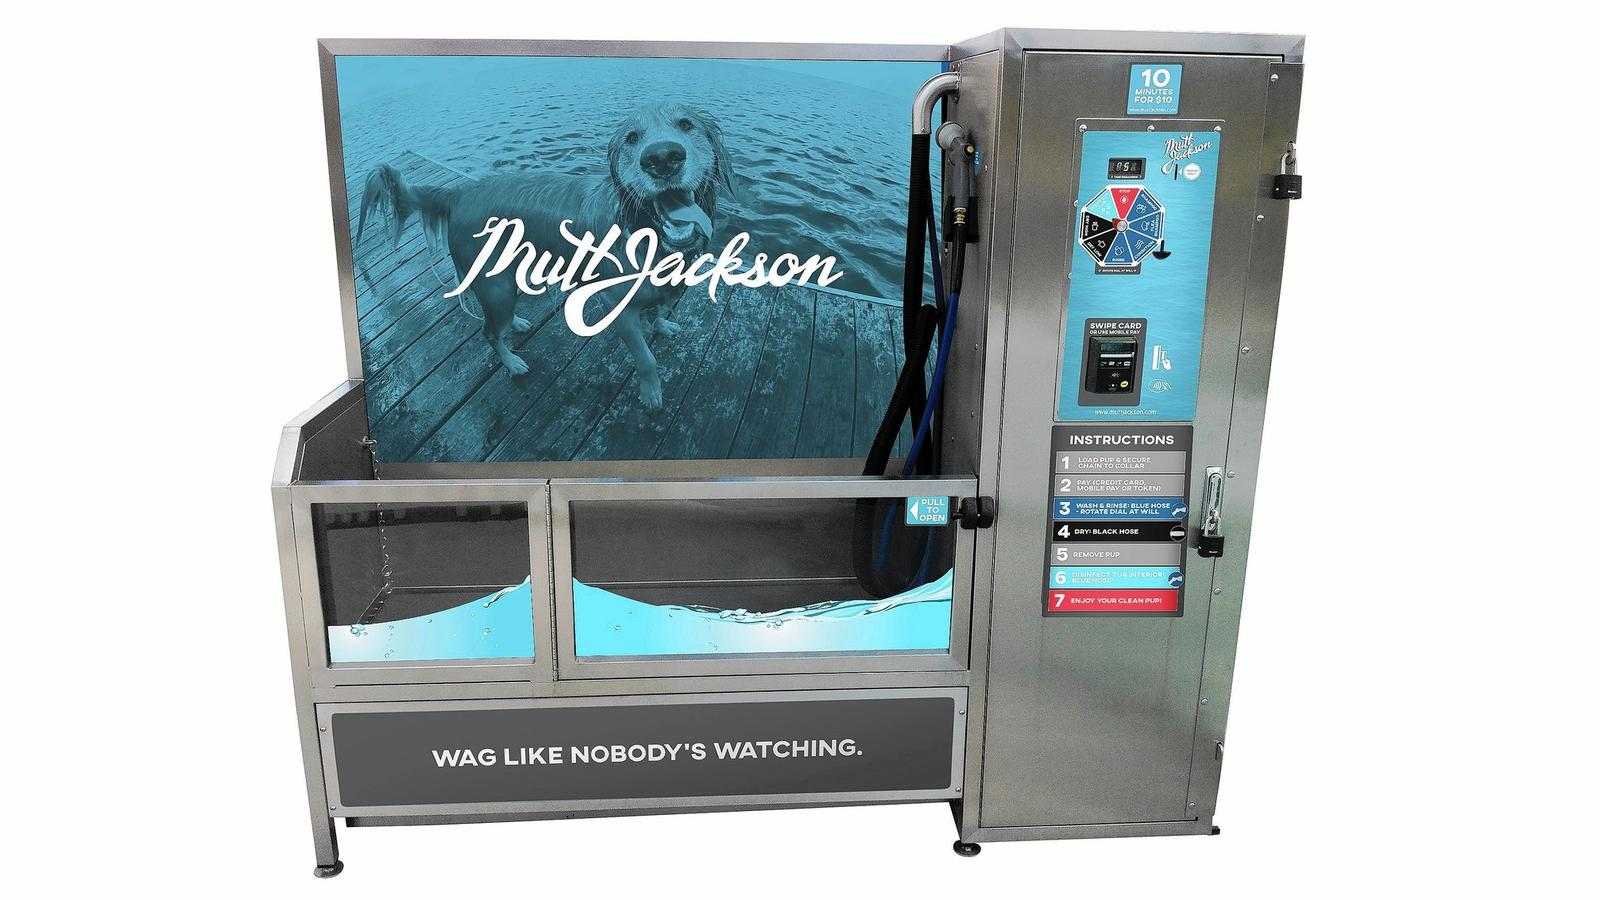 Steve dale talks about mutt jackson dog wash at mondog on wgn radio thousands of dogs at montrose beach or mondog enjoy the free dog beach on any given sunny and pleasant weekend this dog beach is located just north of solutioingenieria Choice Image